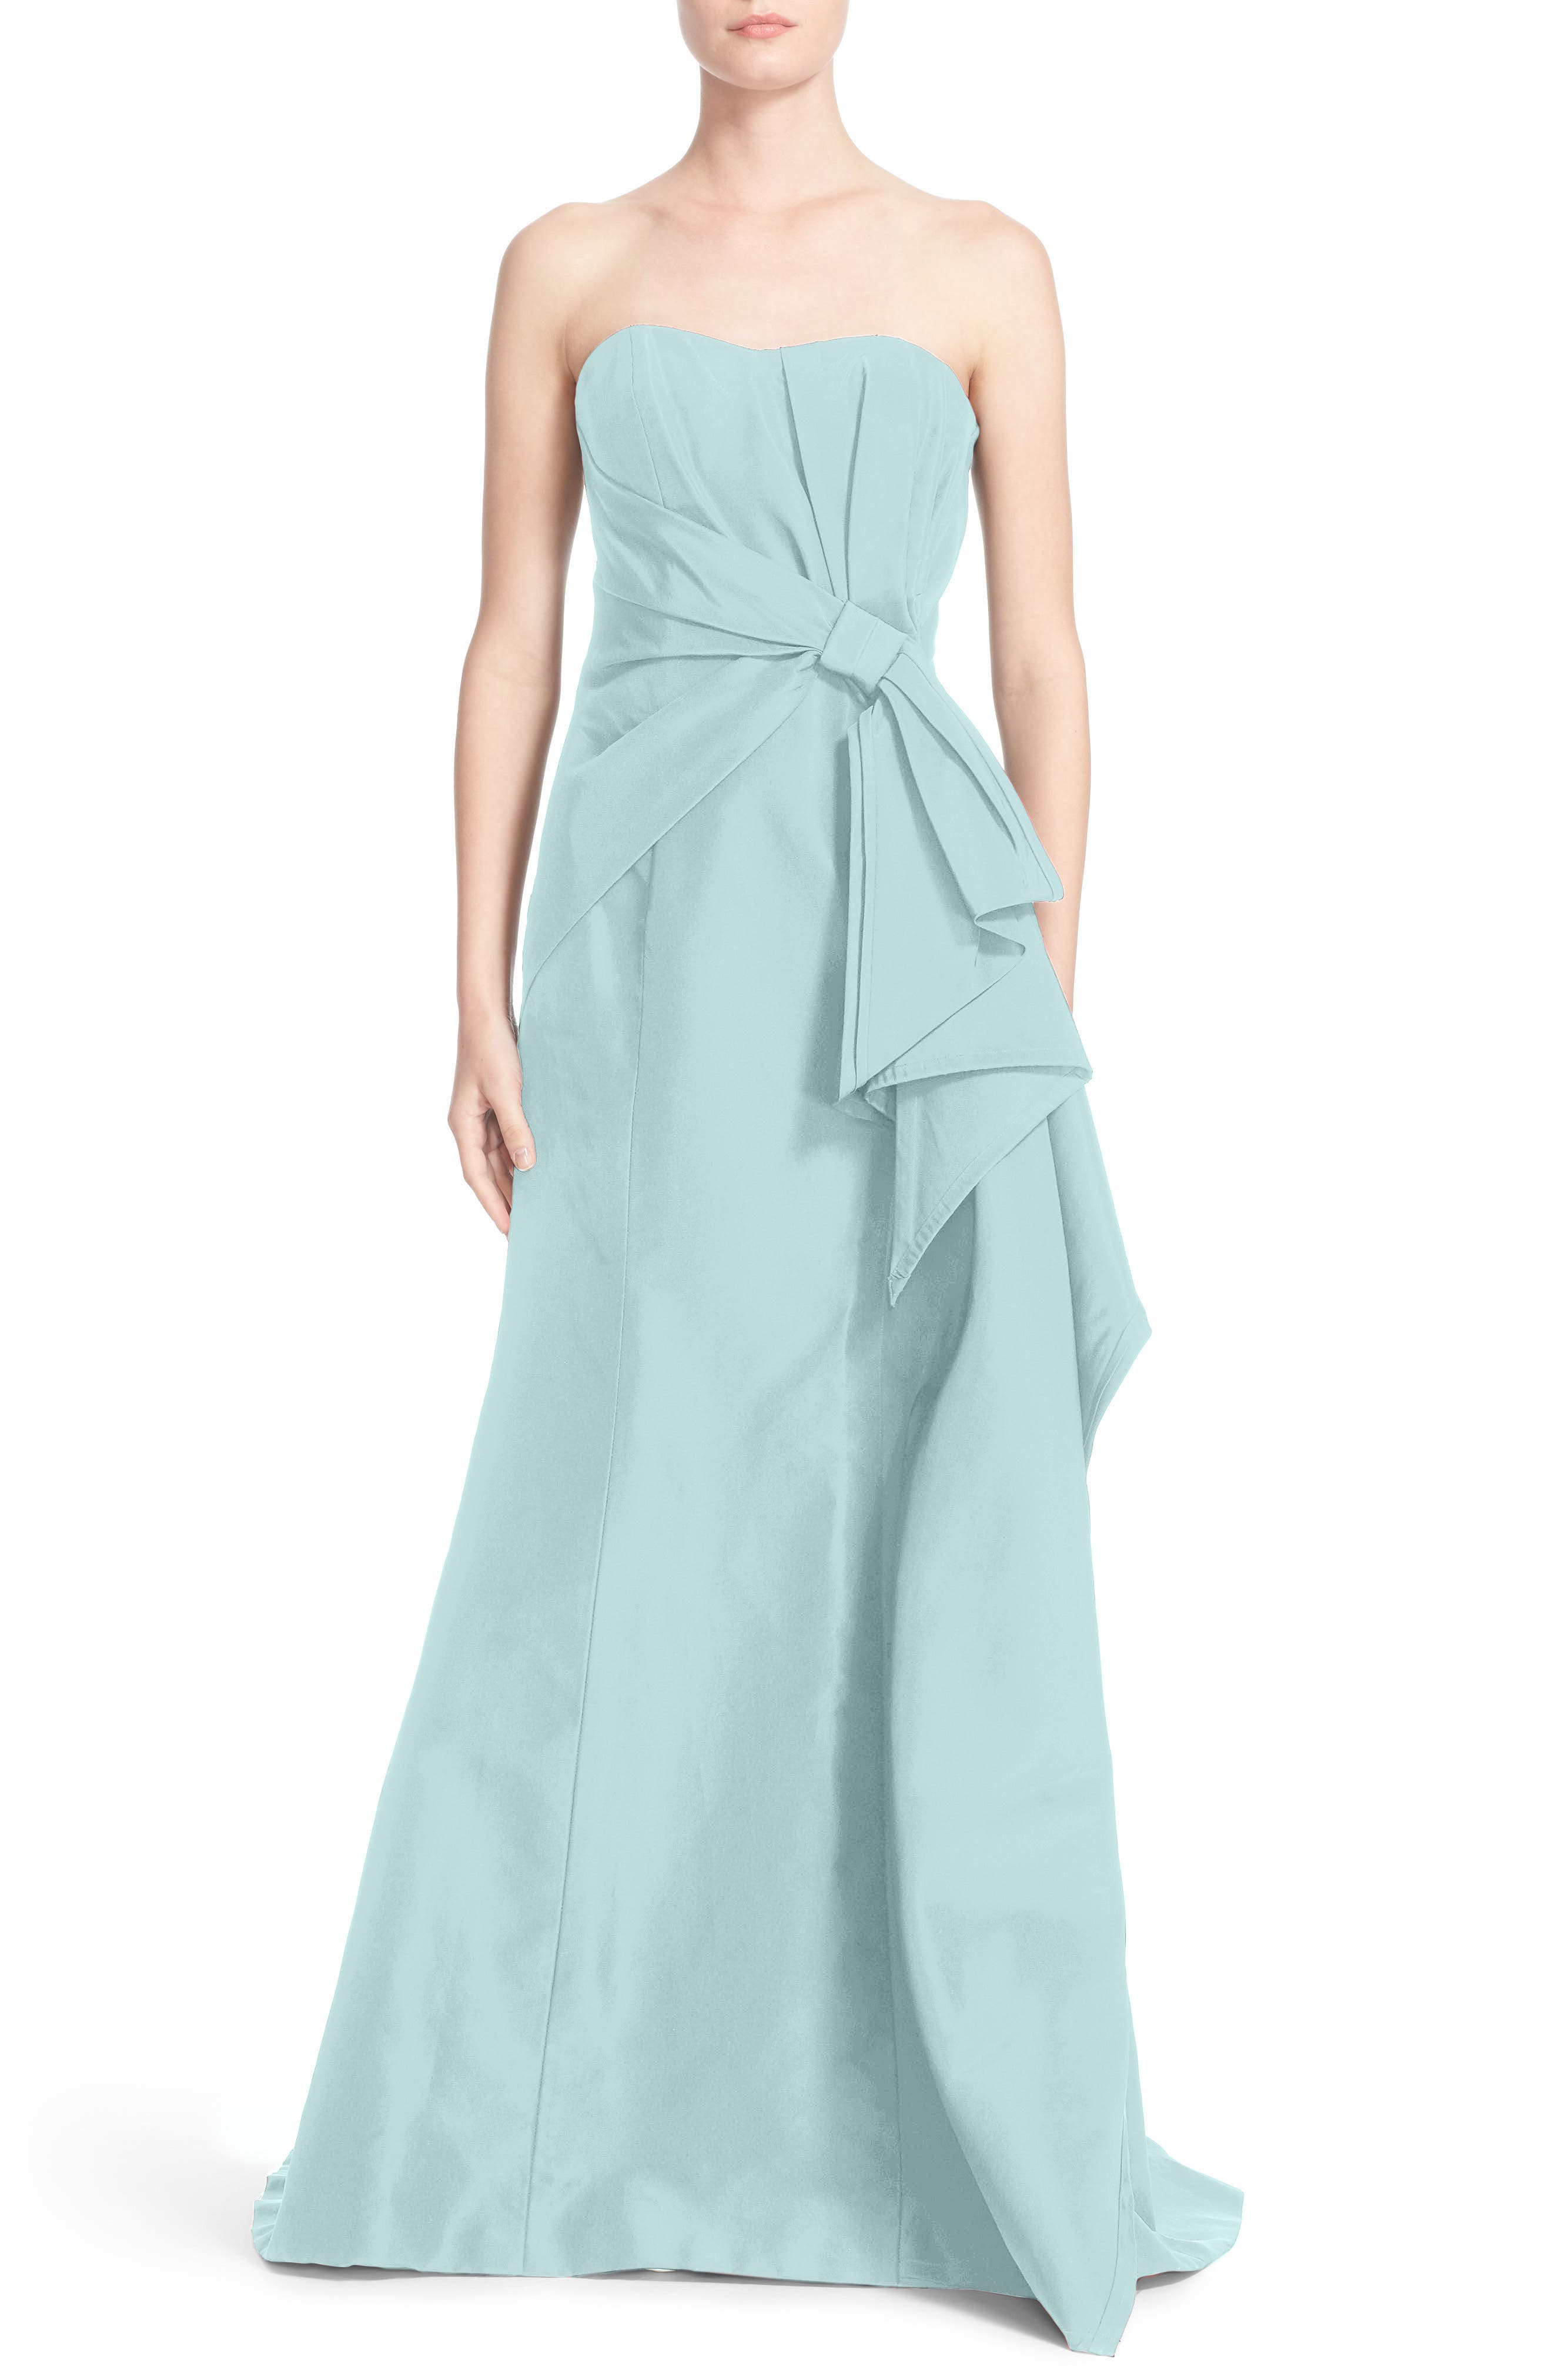 Carolina Herrera Dresses & Women\'s Clothing | Nordstrom